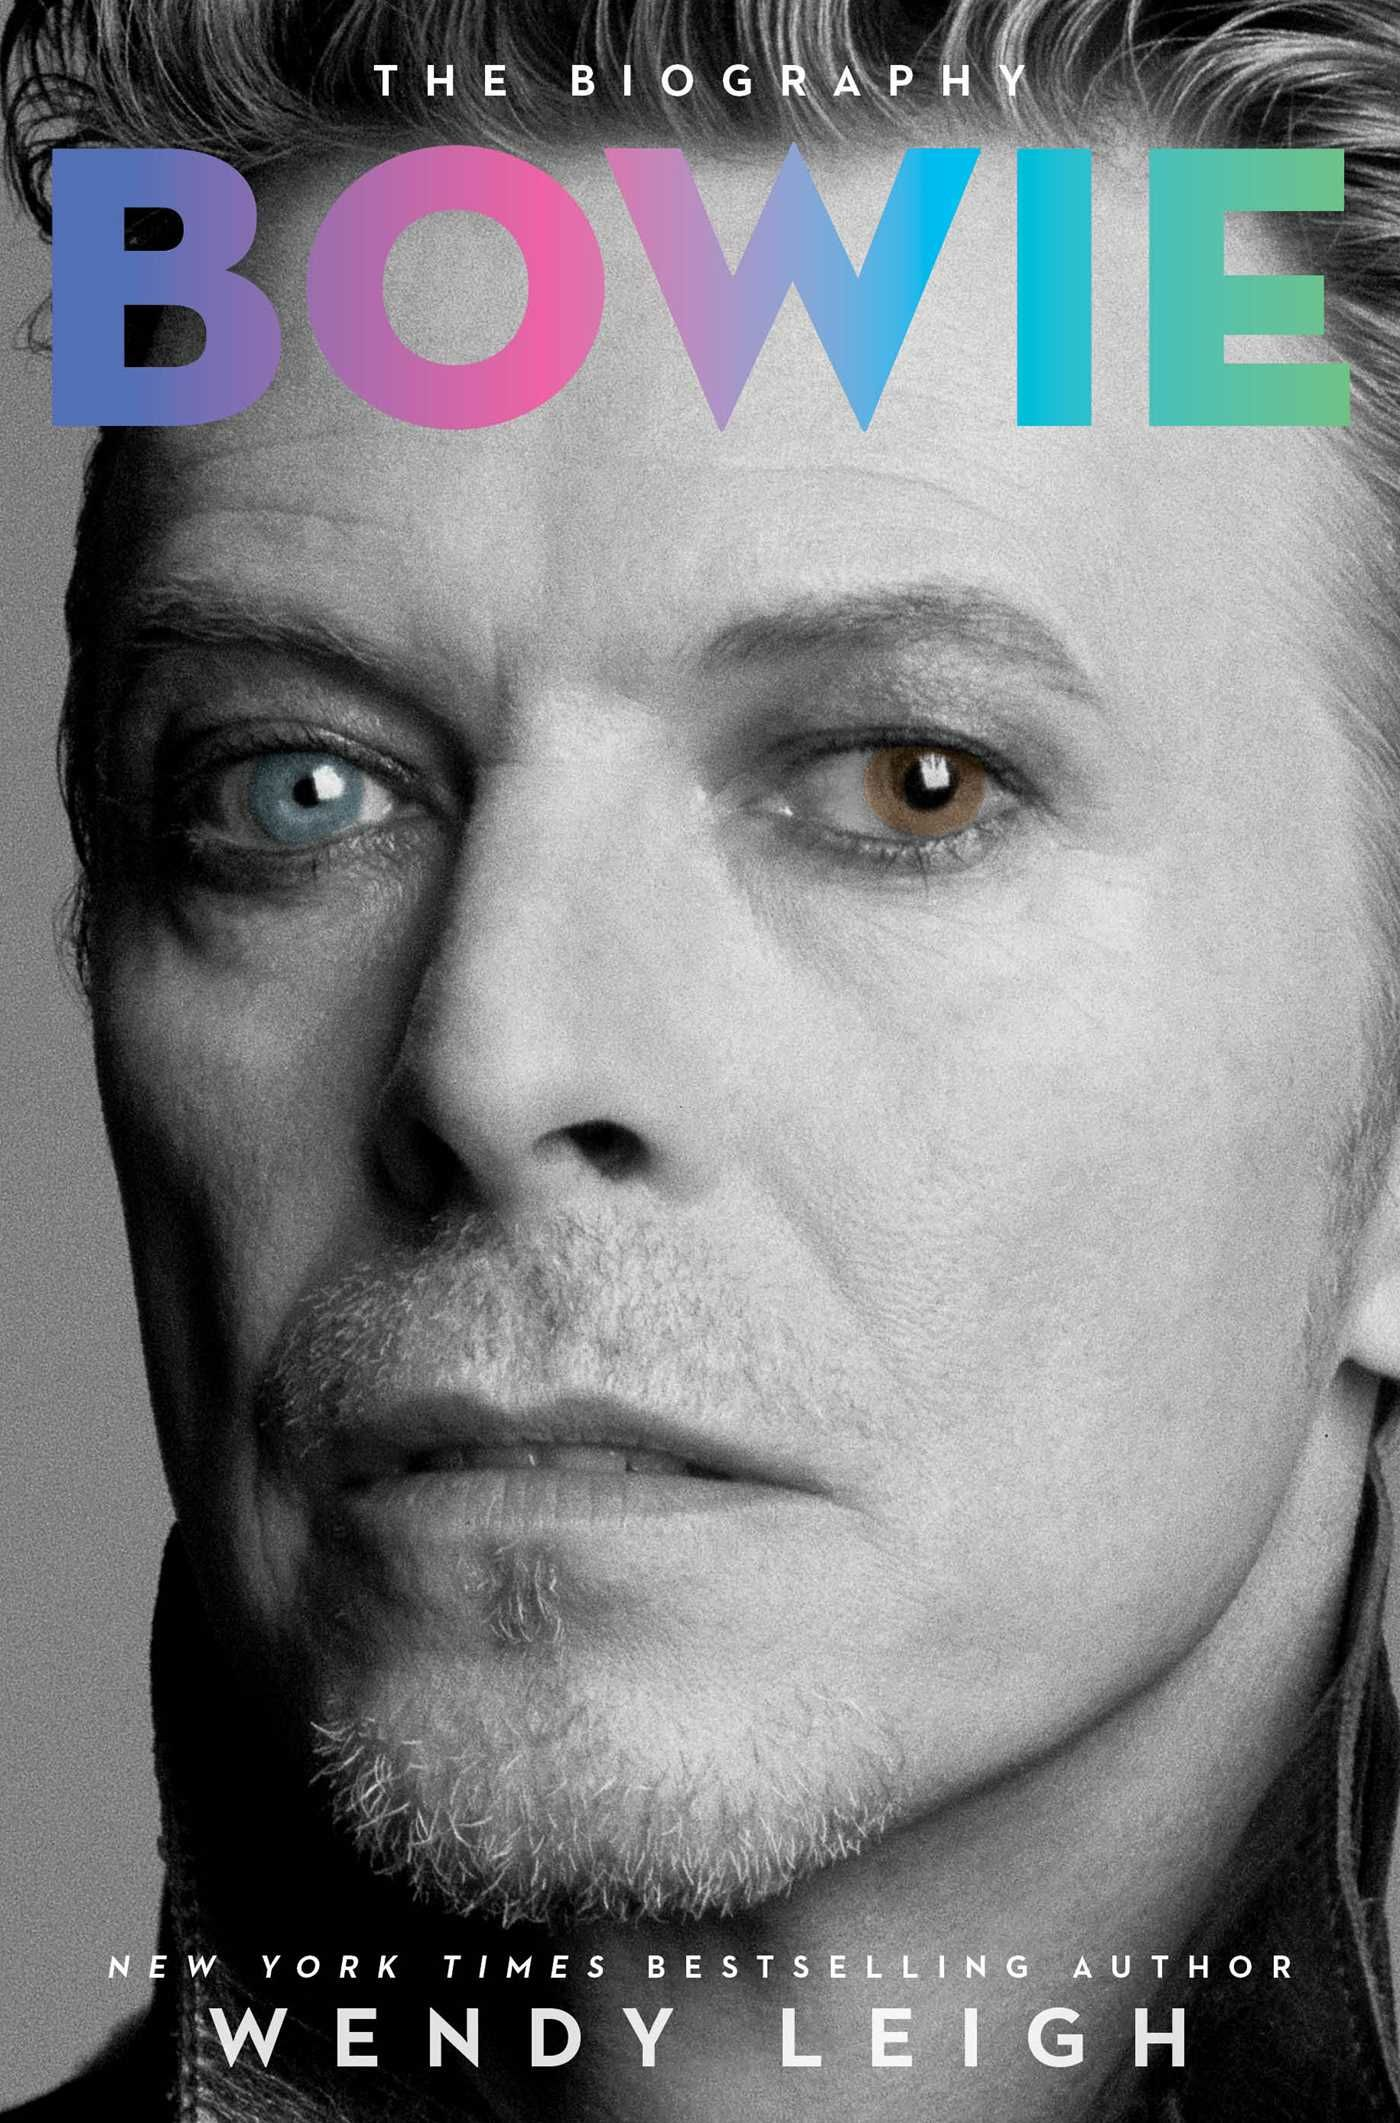 David Bowie Book Cover Photo